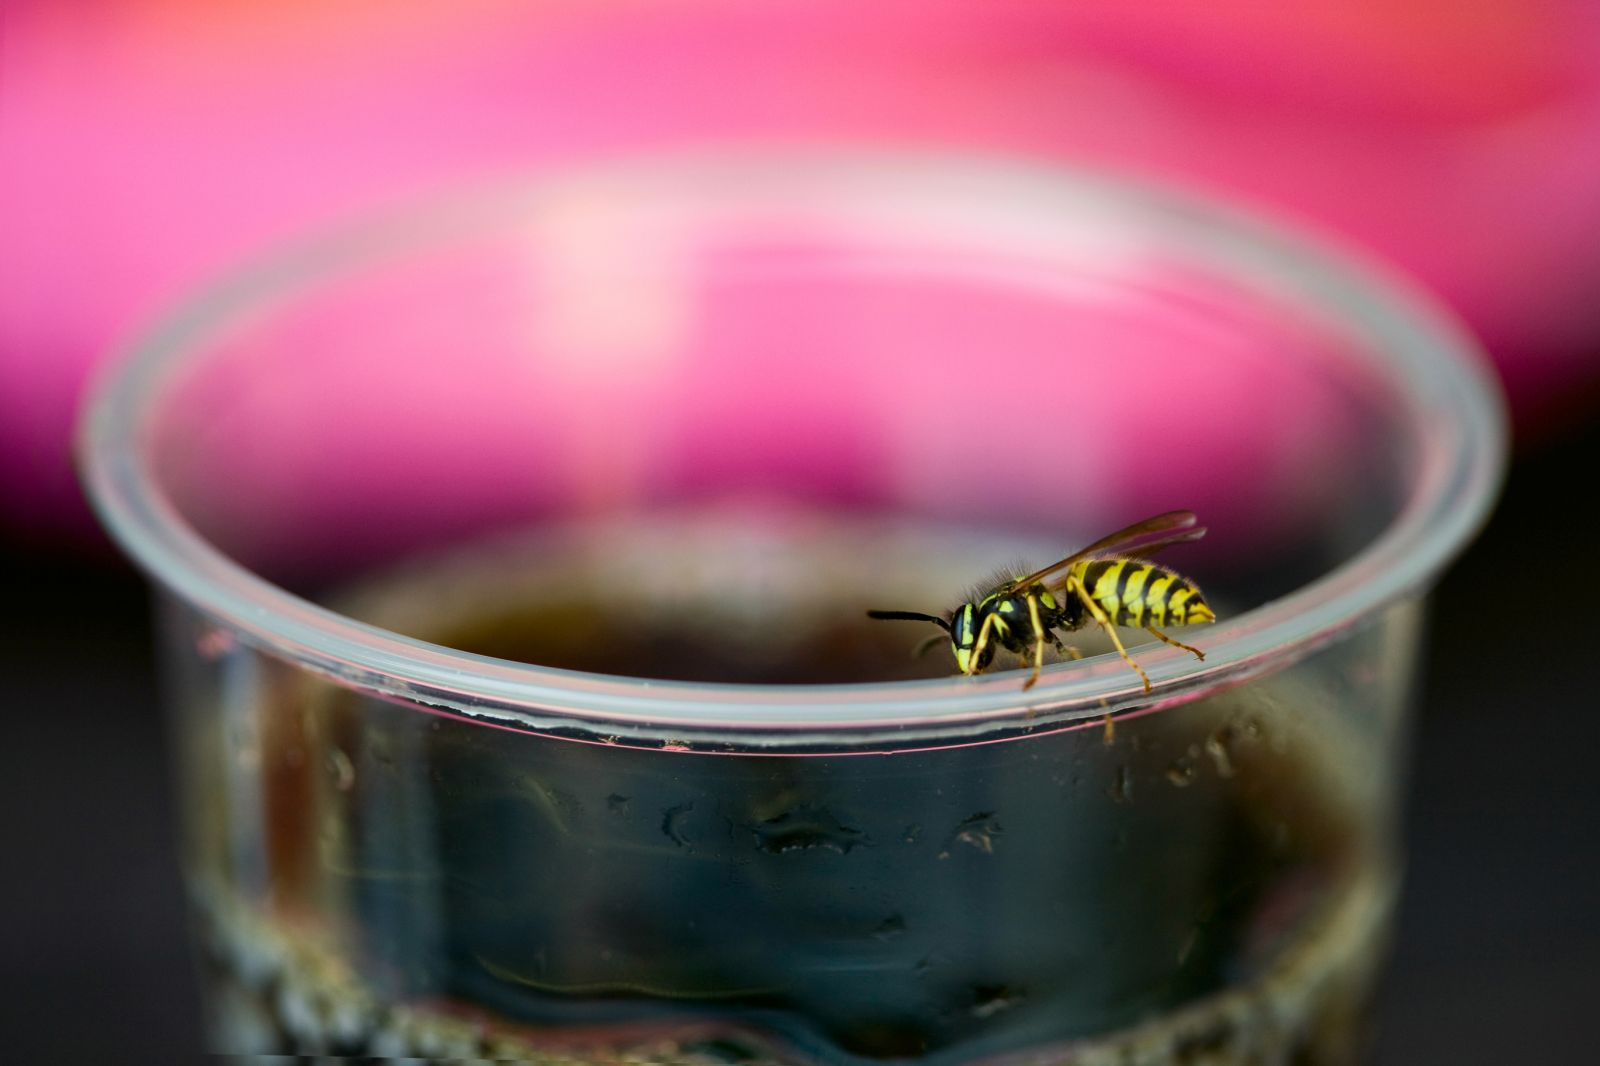 Yellowjackets like sweet liquids, so look before you sip your drink.